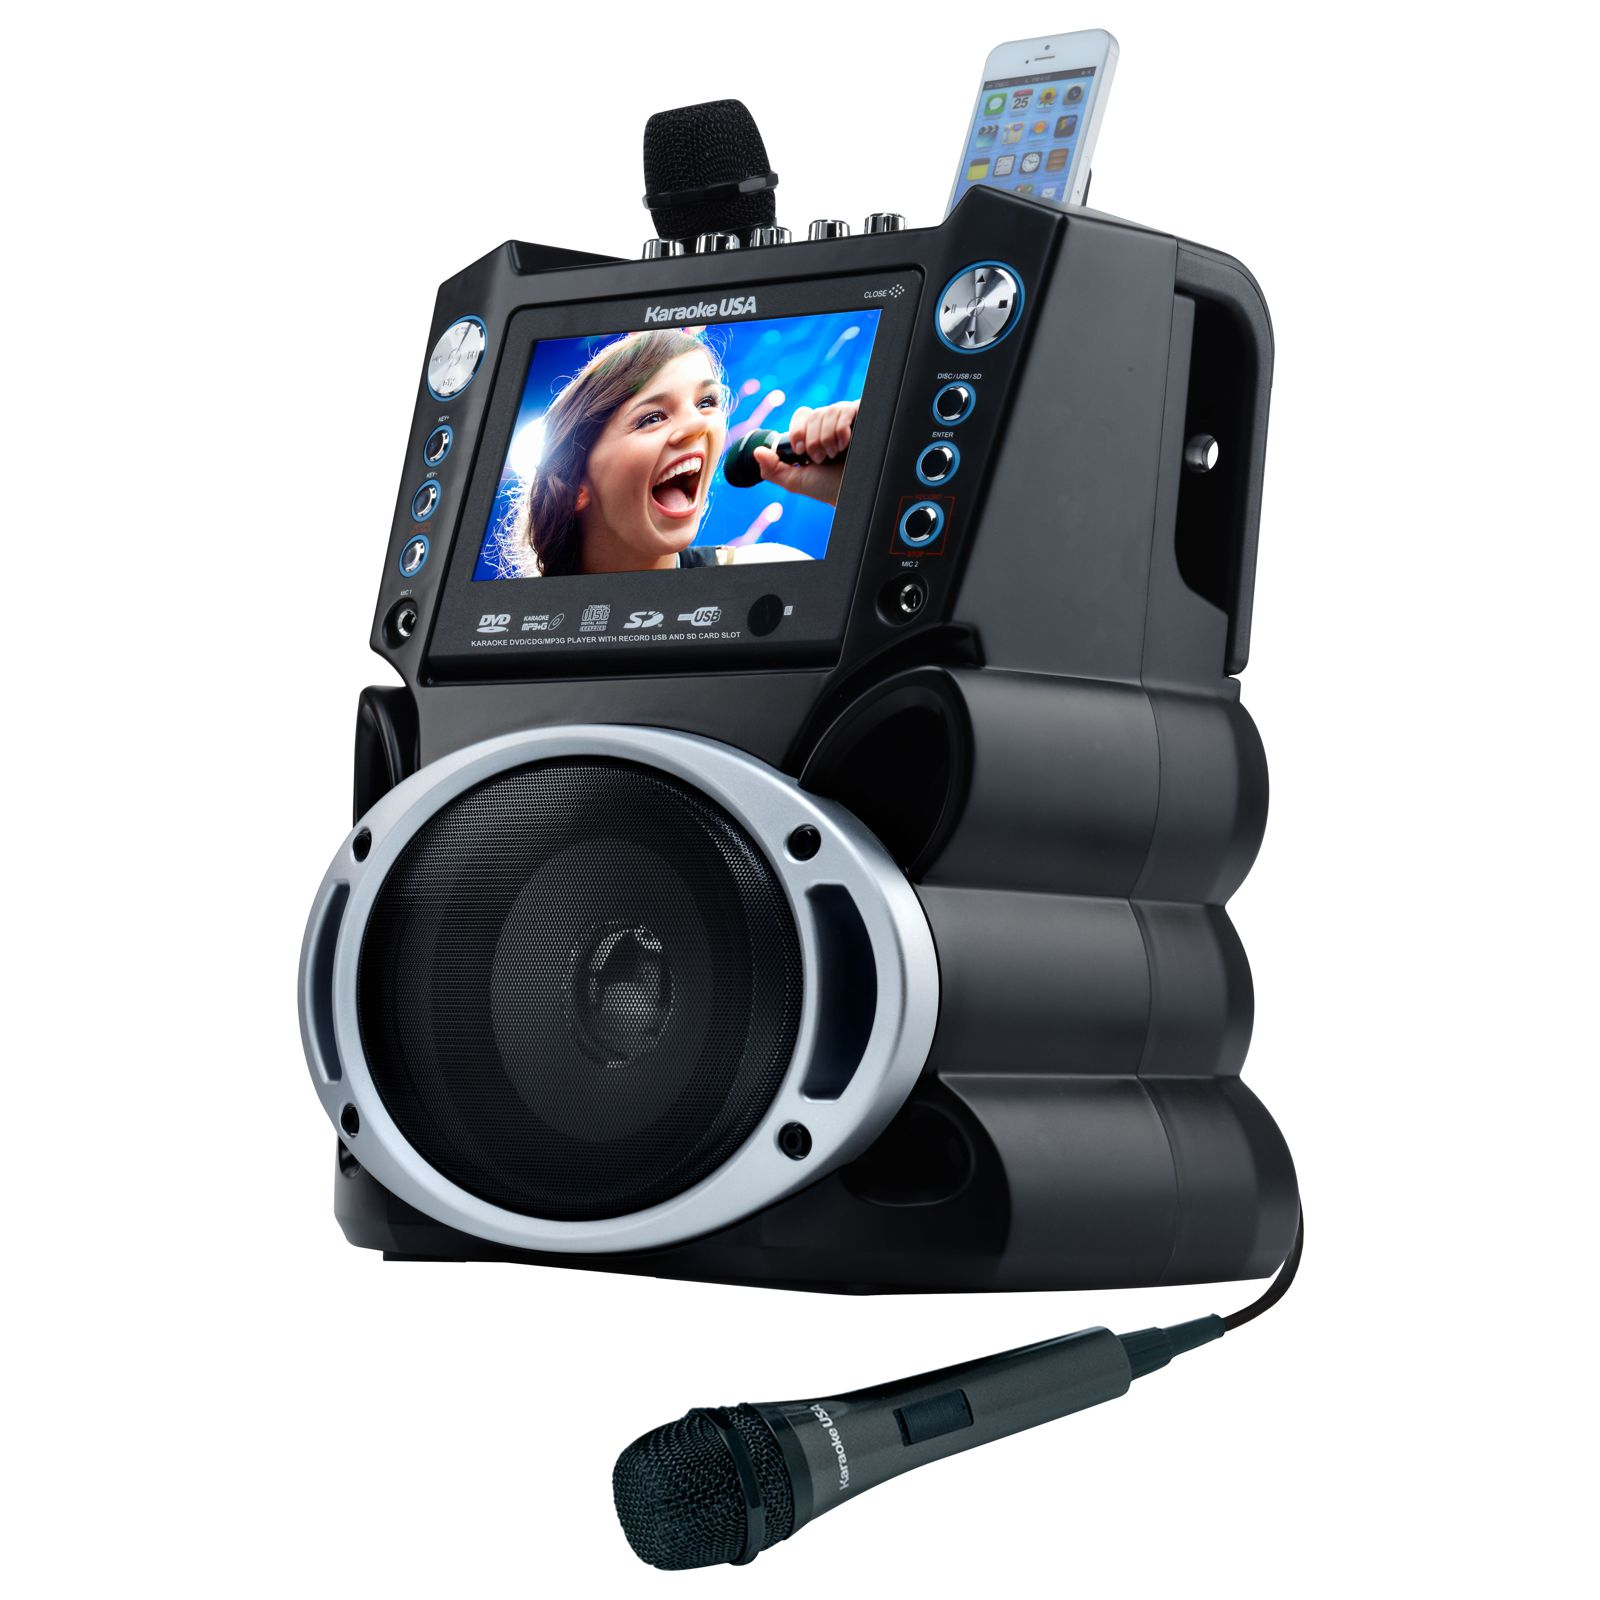 GF839 - DVD/CDG/MP3G Karaoke Machine with 7